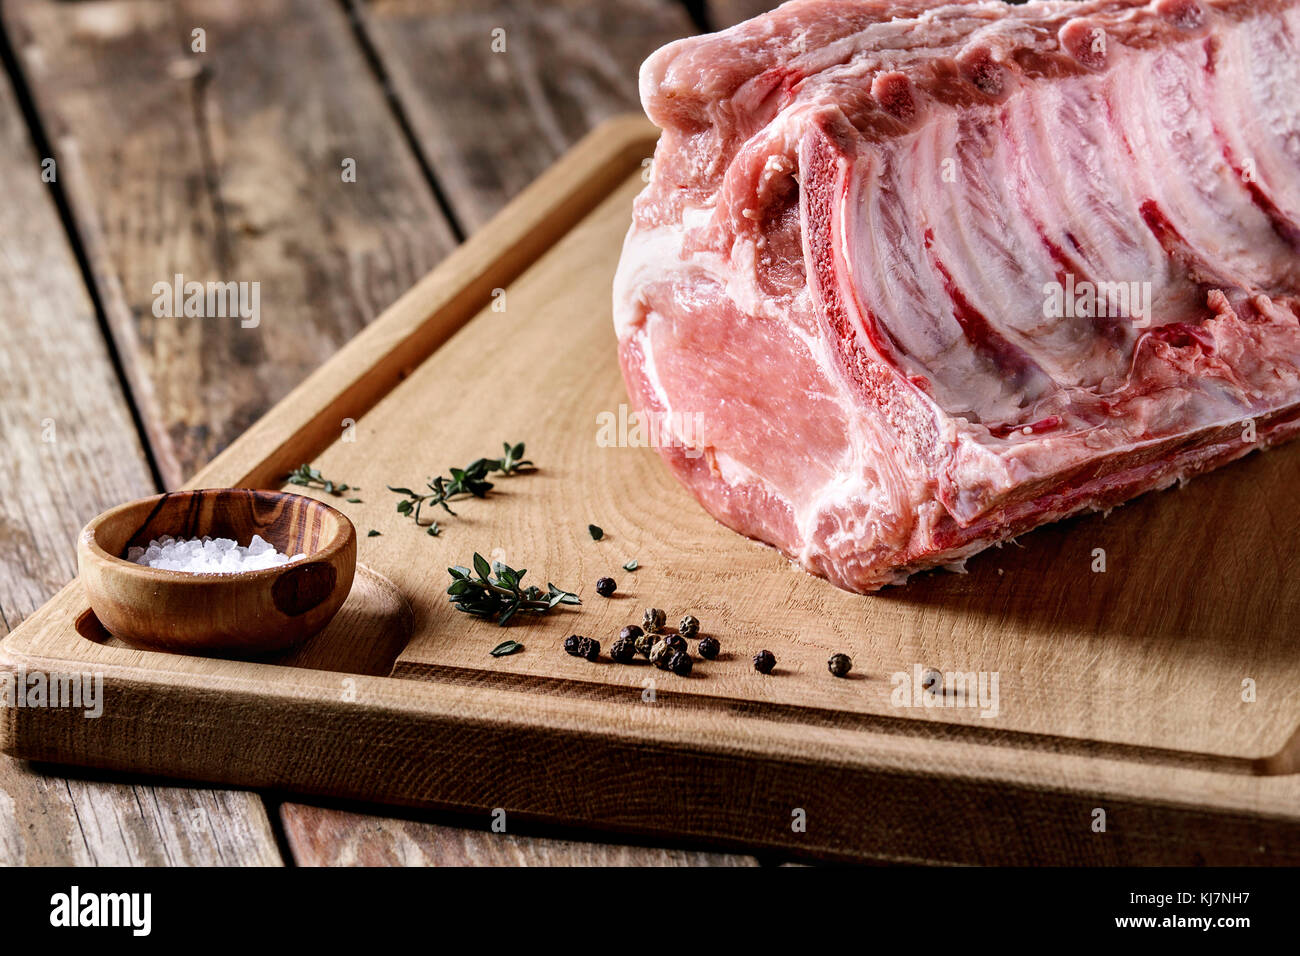 Fresh raw uncooked whole rack of pork loin with ribs on wooden cutting board with salt, thyme and butcher clever - Stock Image